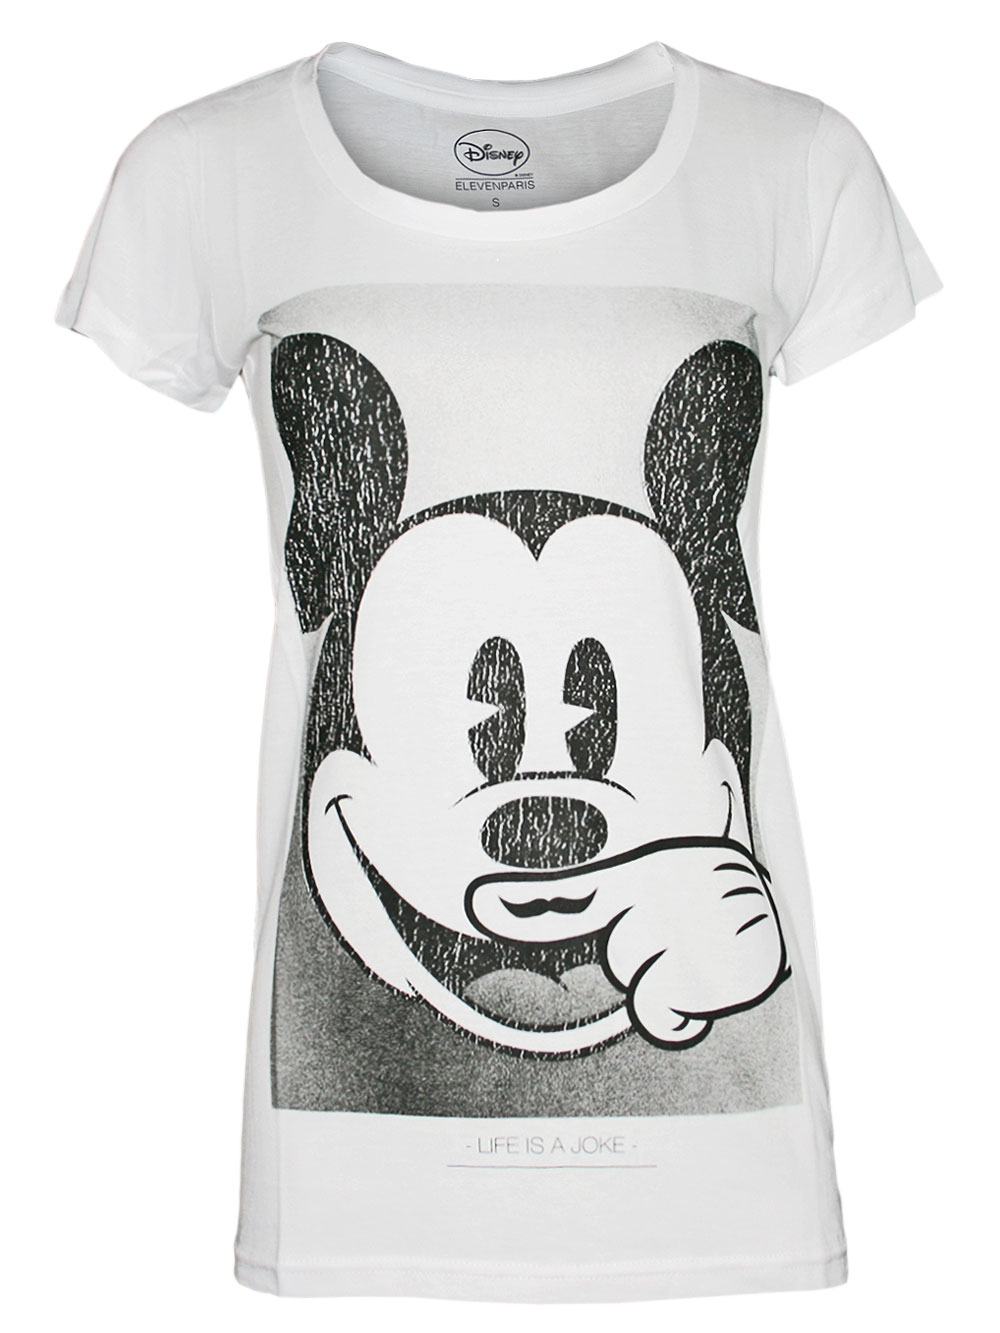 ELEVEN PARIS Damen Top Shirt Boom *Mickey Mouse* Deb* bap NEU in weiss!